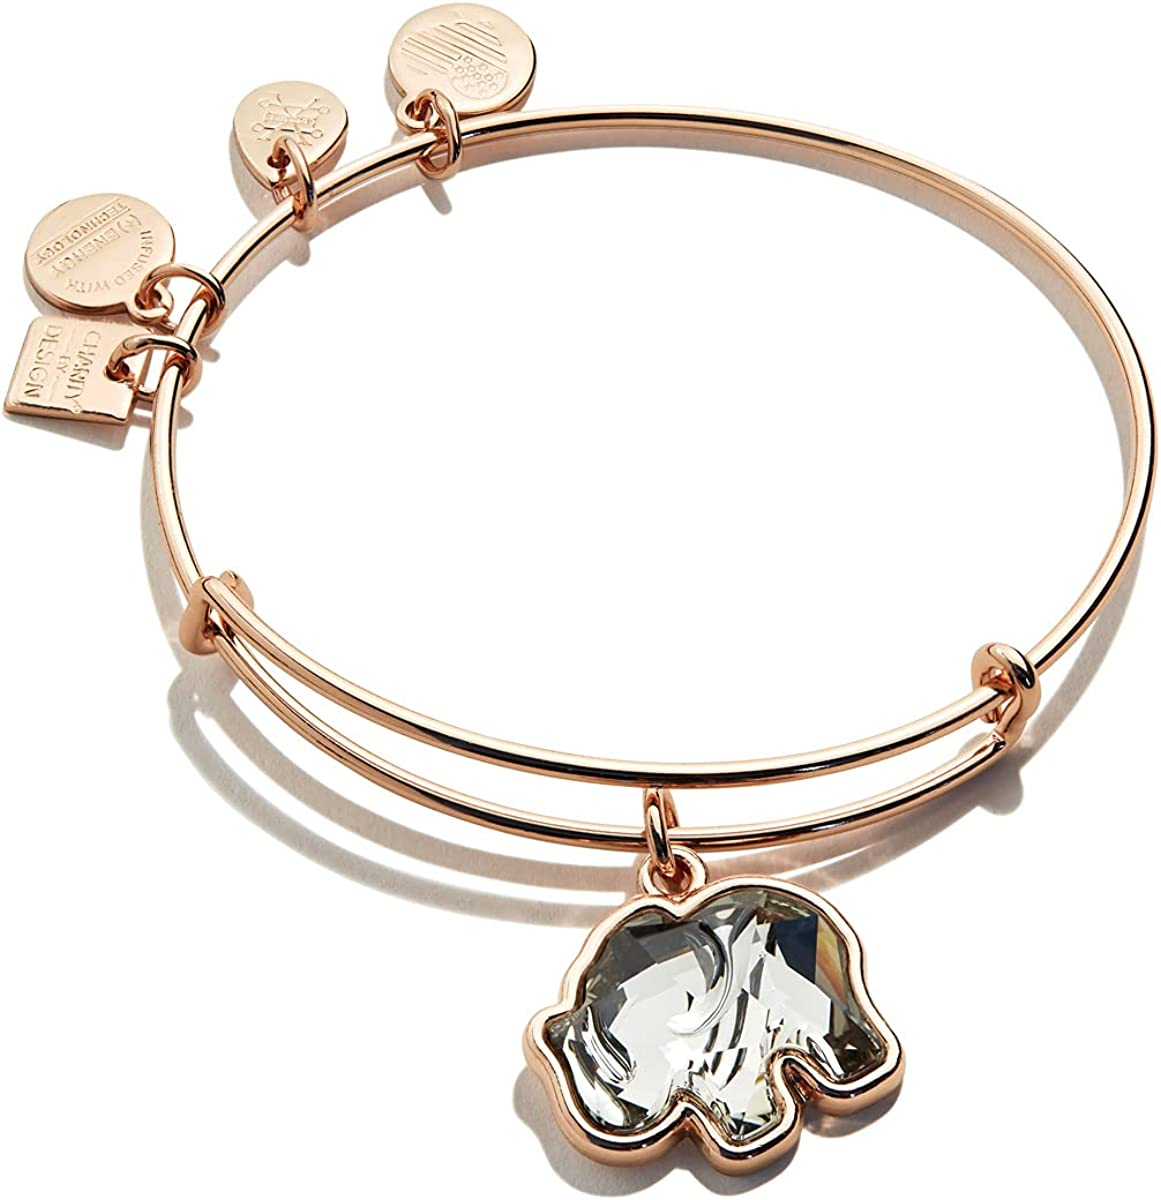 Alex and Ani Path of Symbols Expandable Bangle for Women, Crystal Elephant Charm, Shiny Finish, 2 to 3.5 in